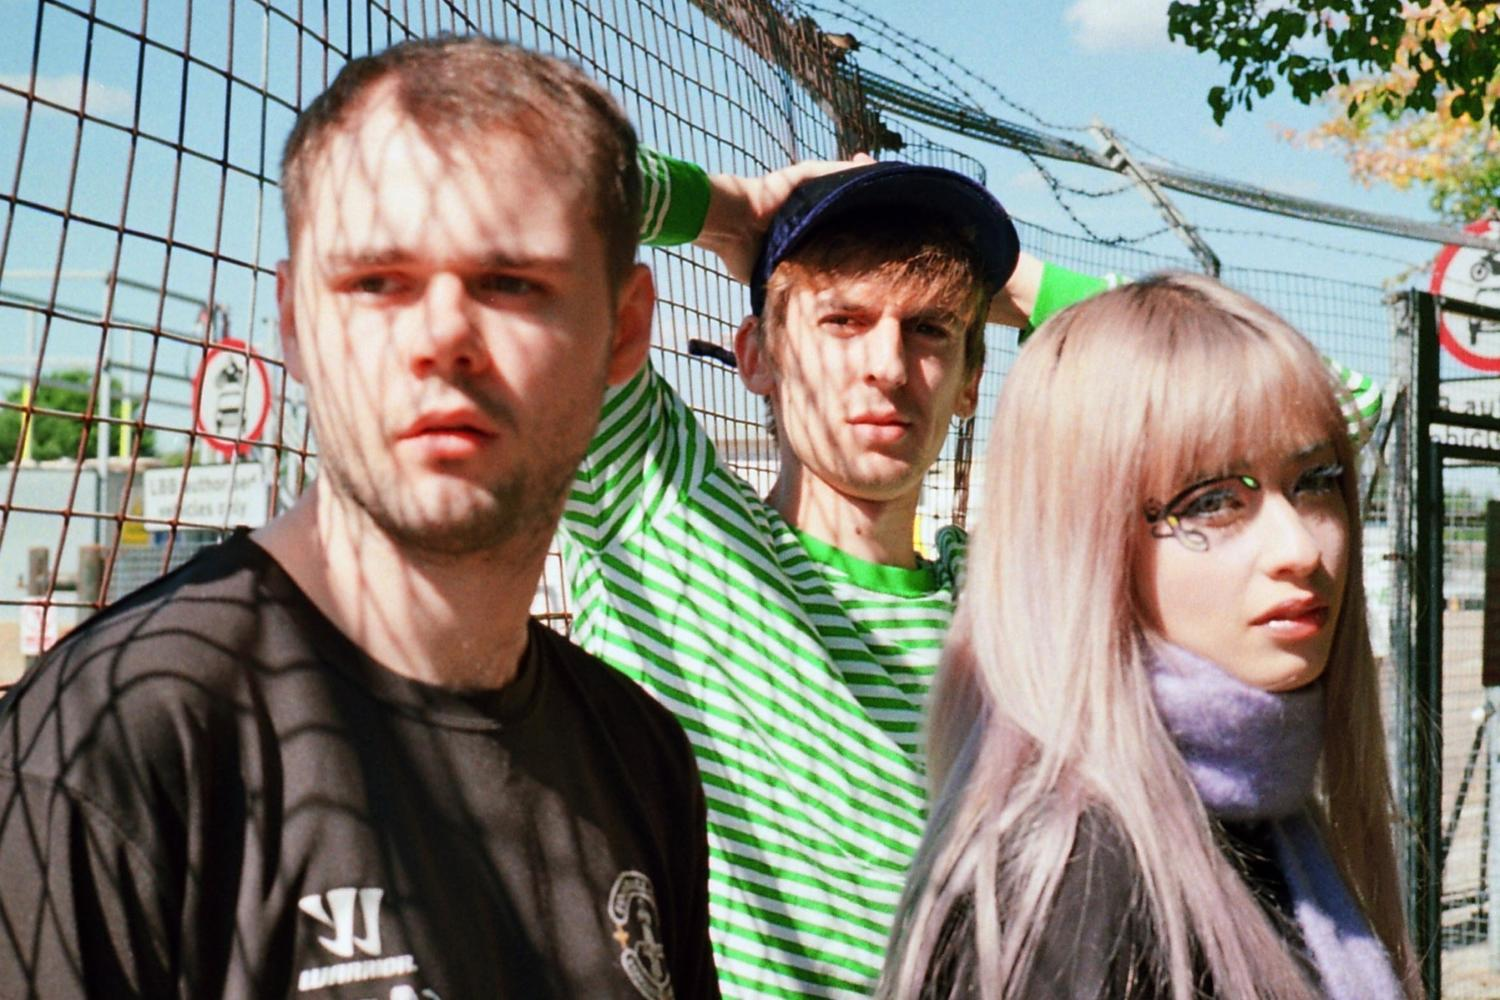 Kero Kero Bonito make a splash with video for 'Swimming'